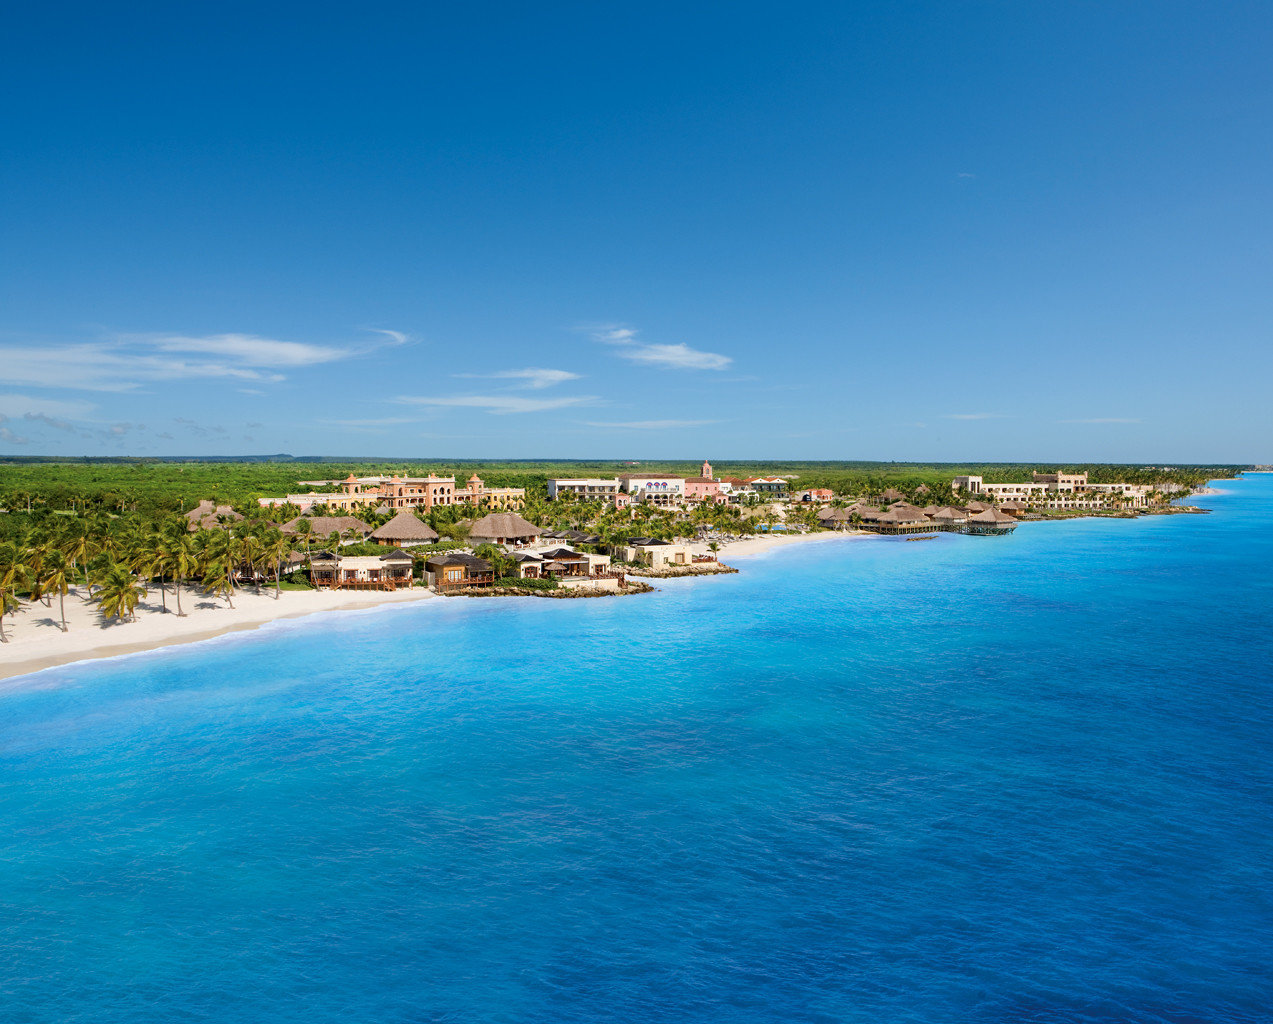 Exterior Grounds Hotels Luxury Ocean Tropical water sky outdoor Nature Sea landform Beach geographical feature reef body of water blue horizon shore Coast vacation caribbean bay Lagoon Lake cape islet Island archipelago cove tropics swimming